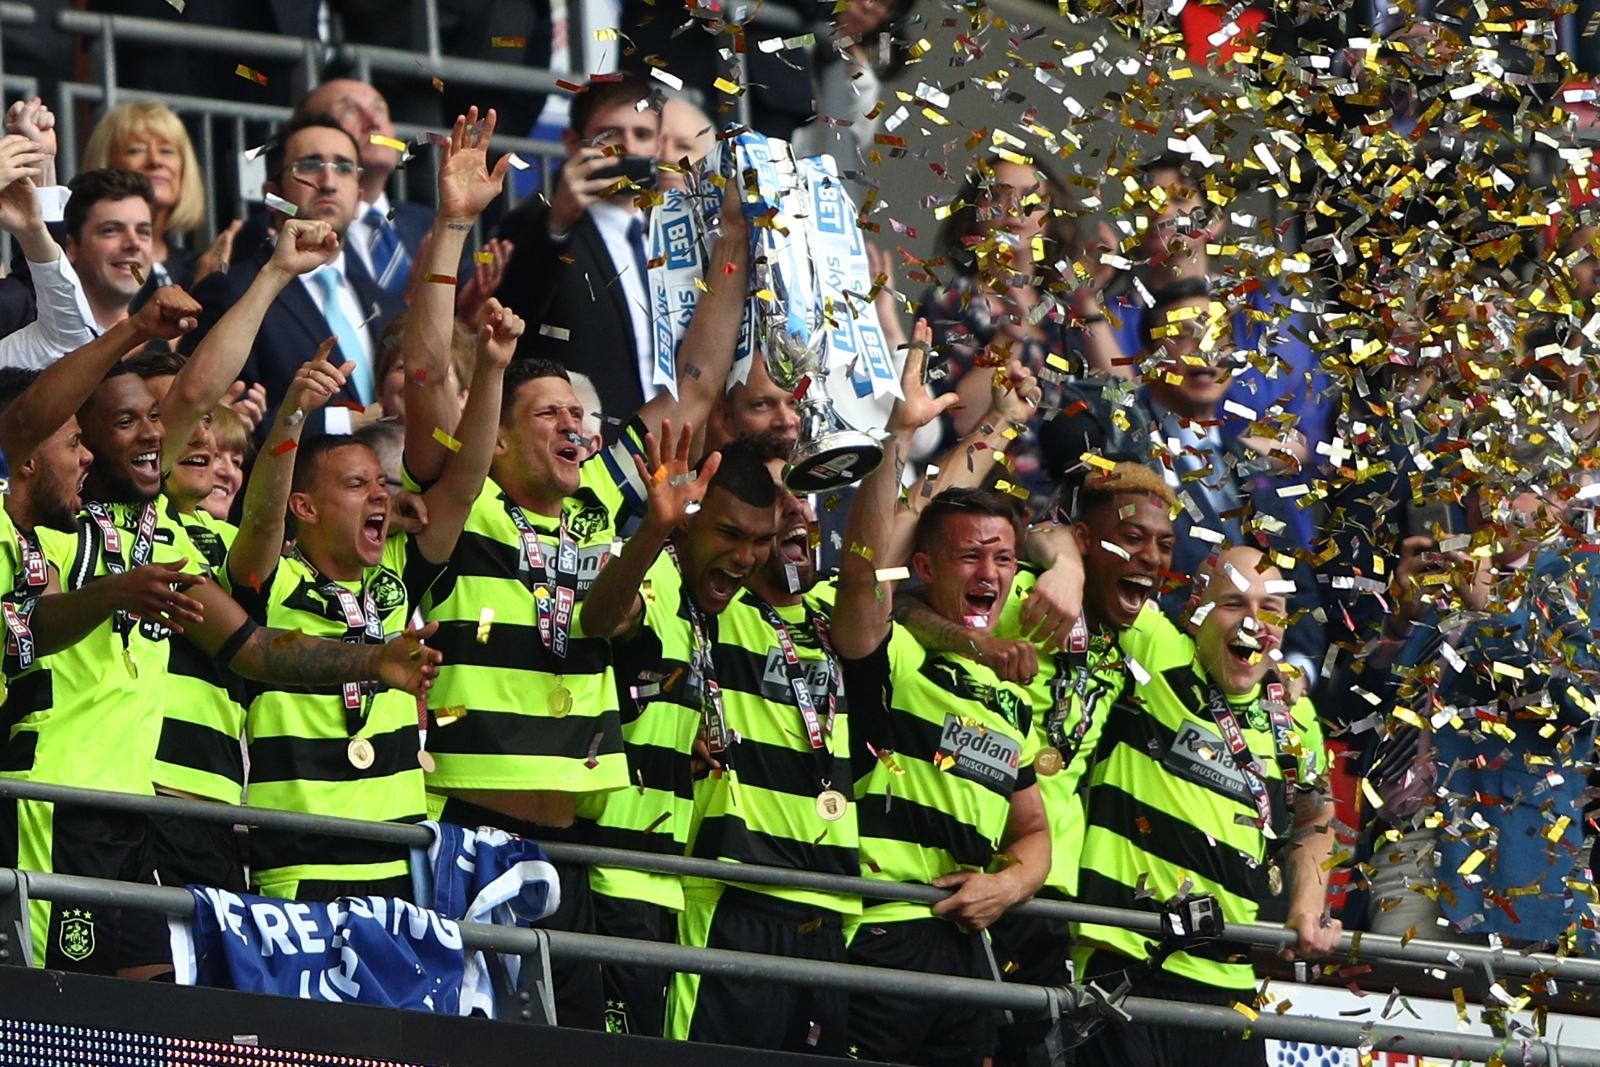 https://d.ibtimes.co.uk/en/full/1629706/huddersfield-town.jpg